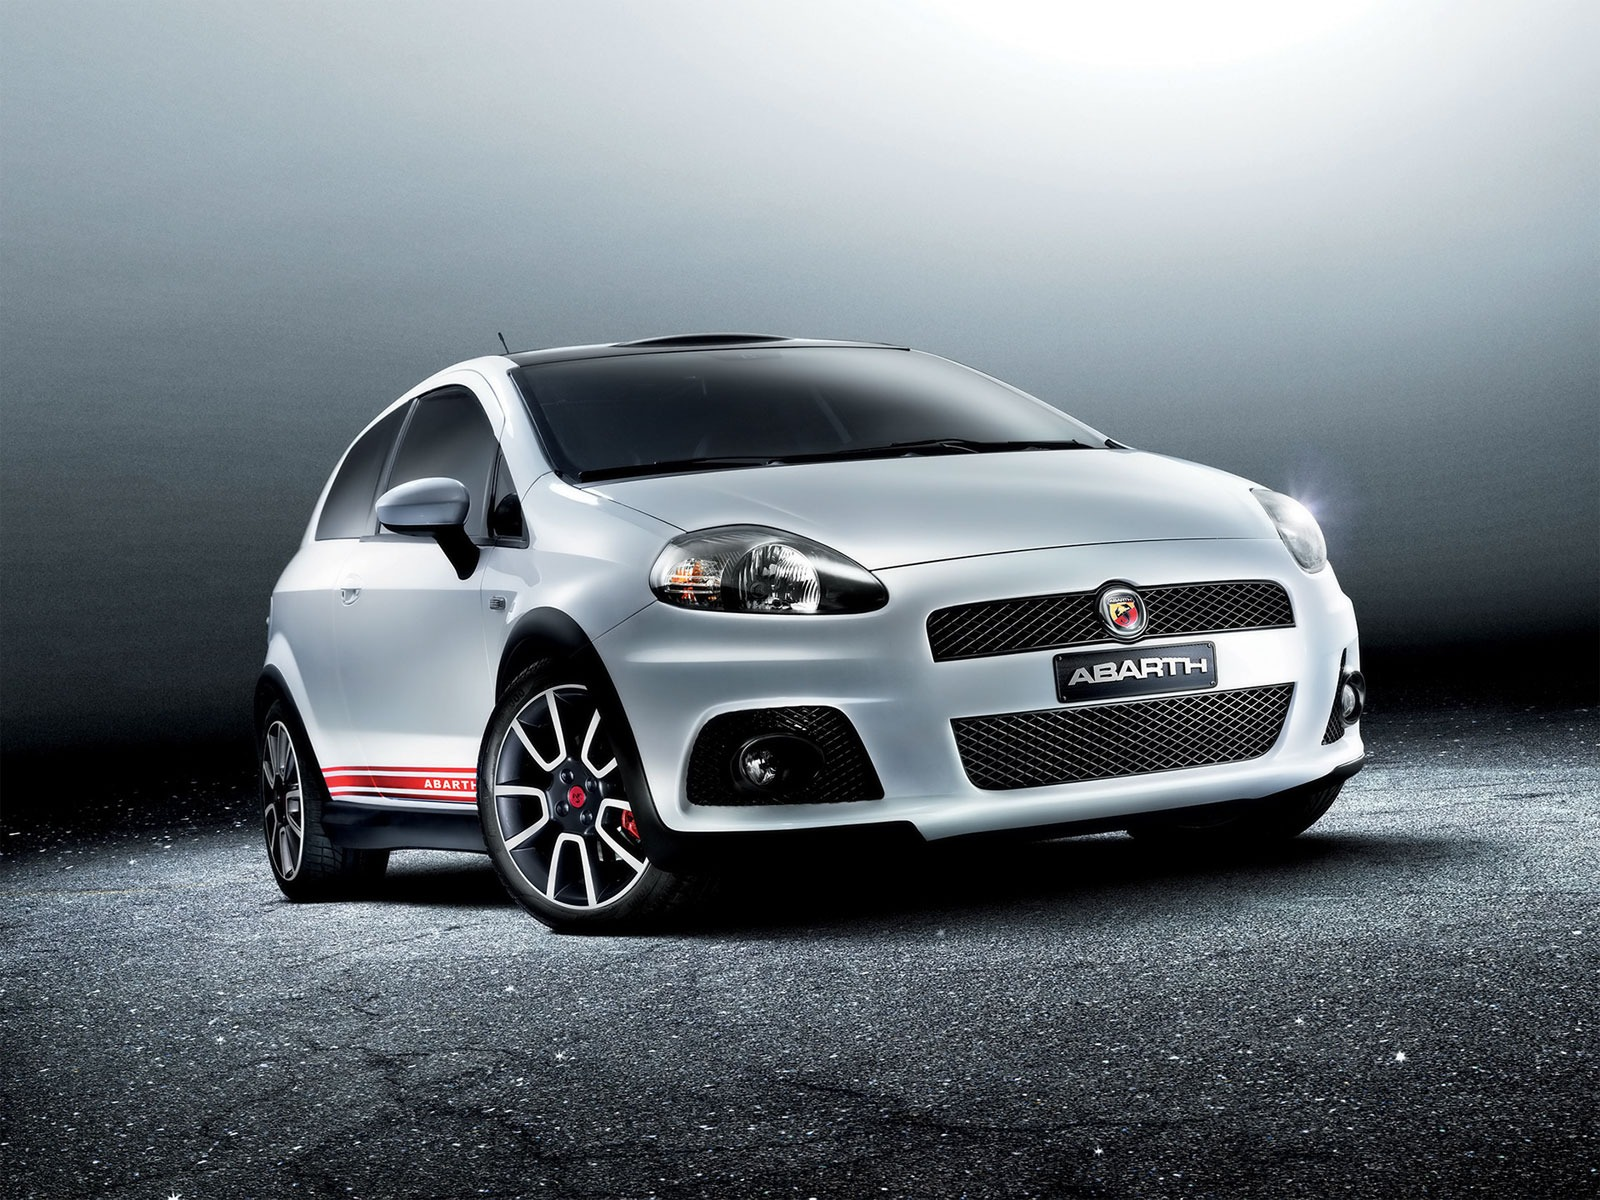 Fiat Wallpaper Fiat Cars Wallpapers In Jpg Format For Free